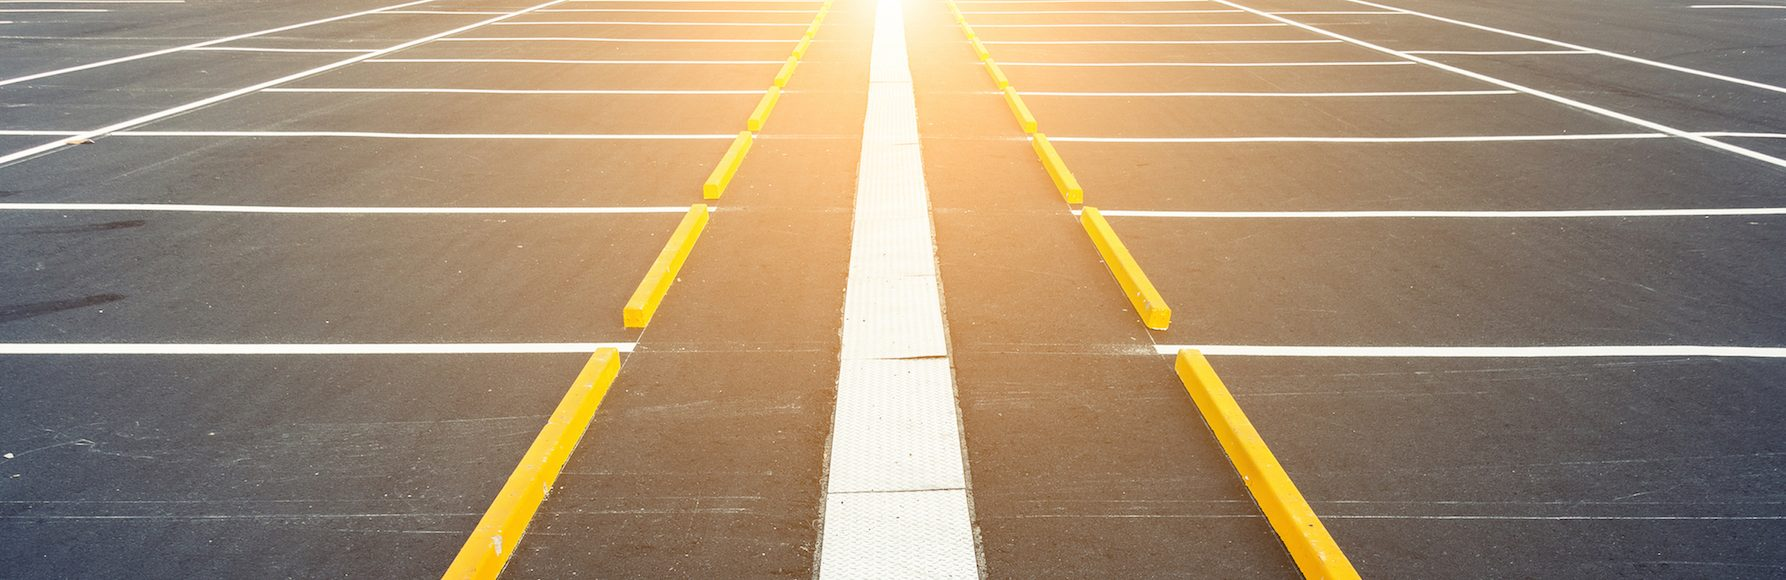 Asphalt Sealing: Protect Your Parking Lot From Sun Damage